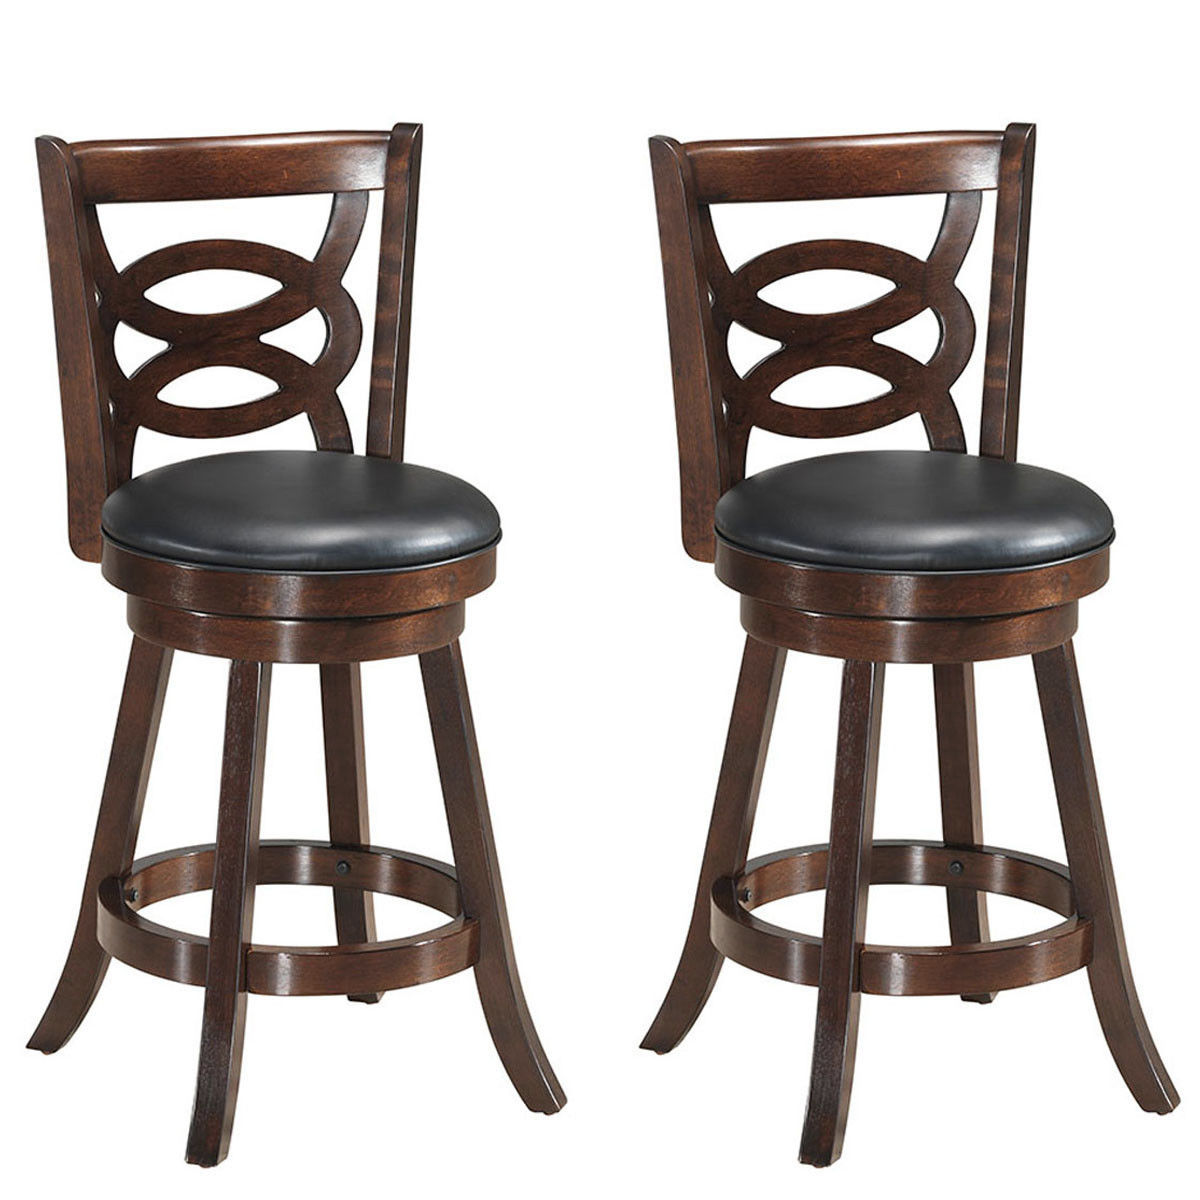 Costway Set Of 2 Bar Stools 24'' Height Wooden Swivel Backed Dining Chair Home Kitchen